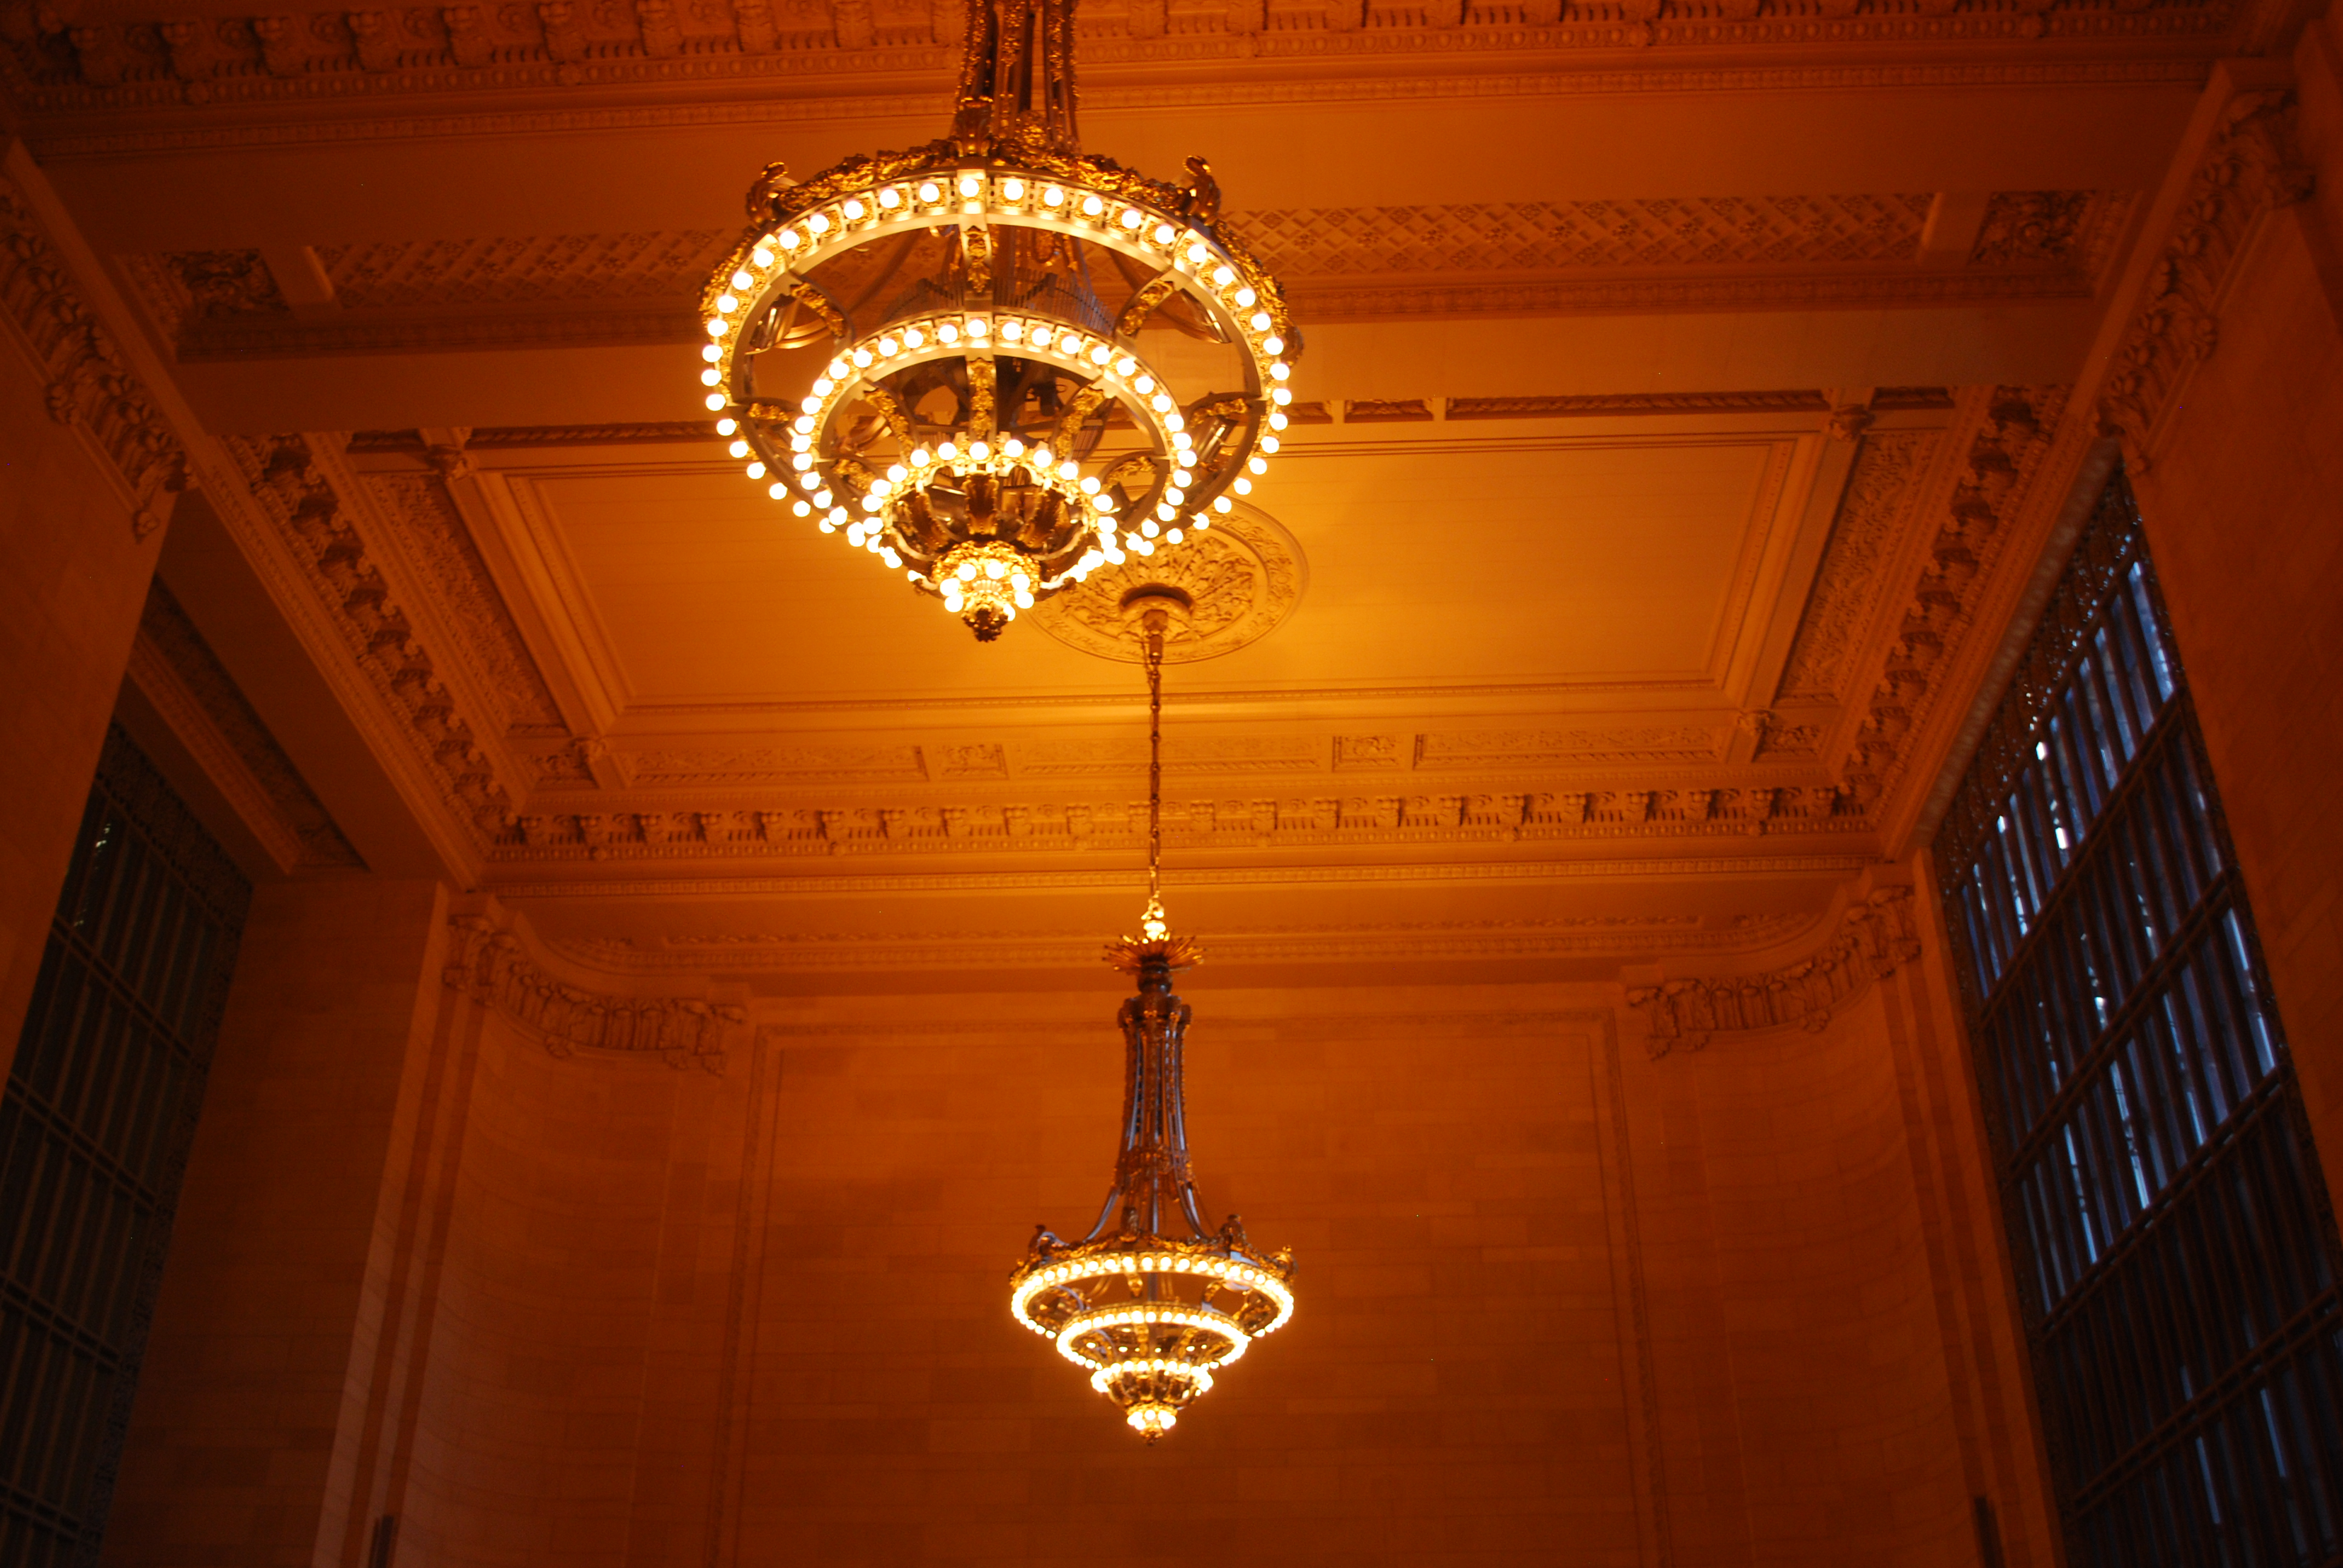 Two chandeliers glowing in the lobby of Grand Central Station.